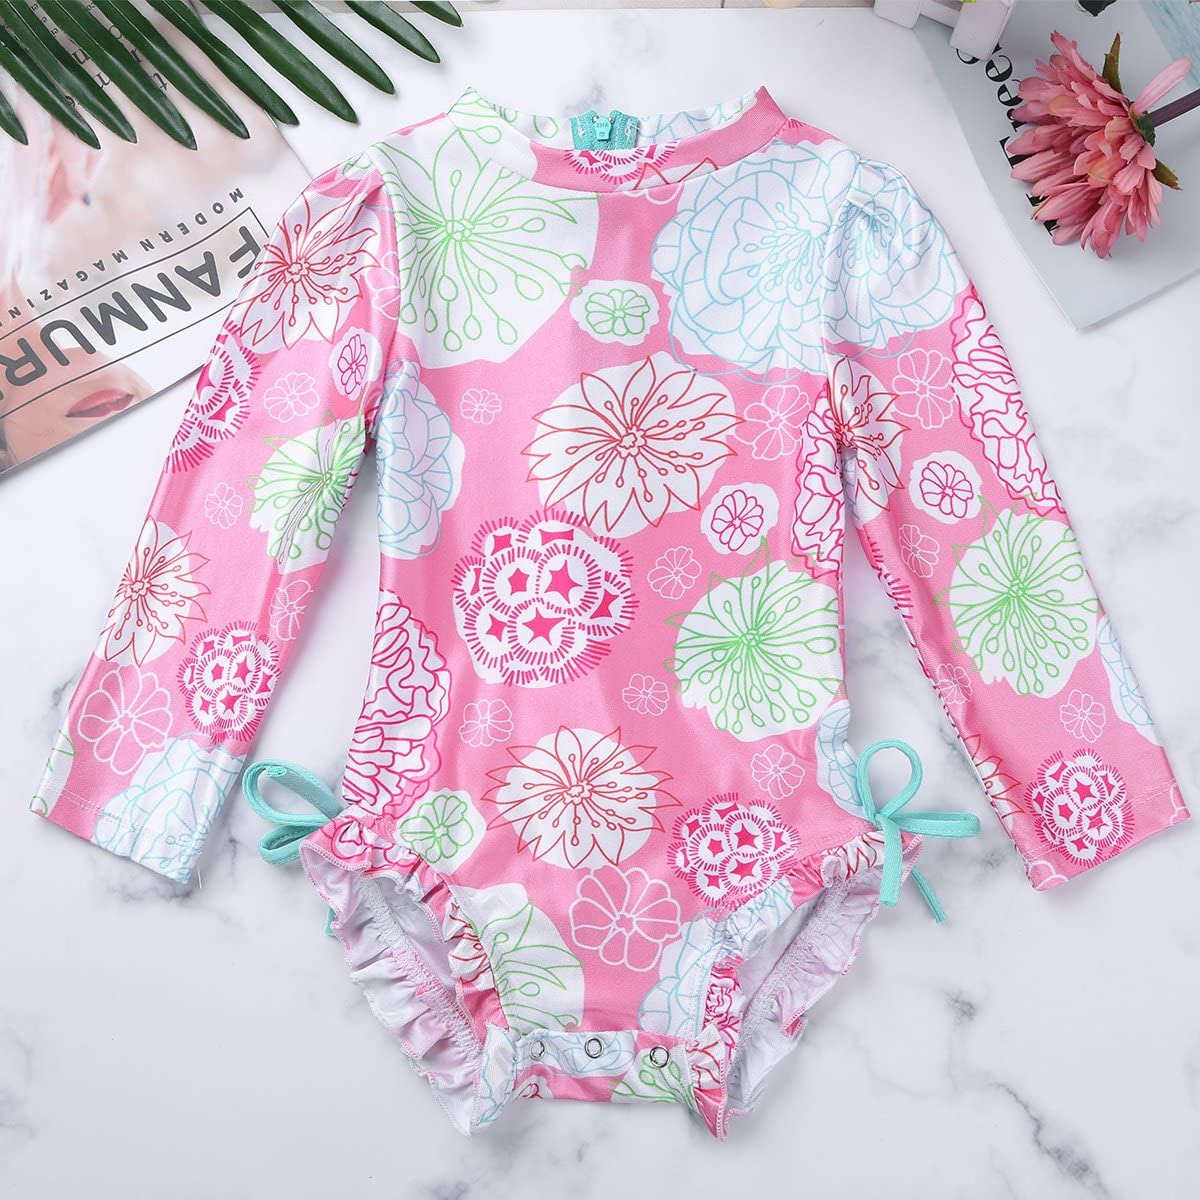 inlzdz Baby Girls One Piece Long Sleeve UV Protective Rash Guard Swimsuit Swimwear All-in-One Wetsuit Sunsuit